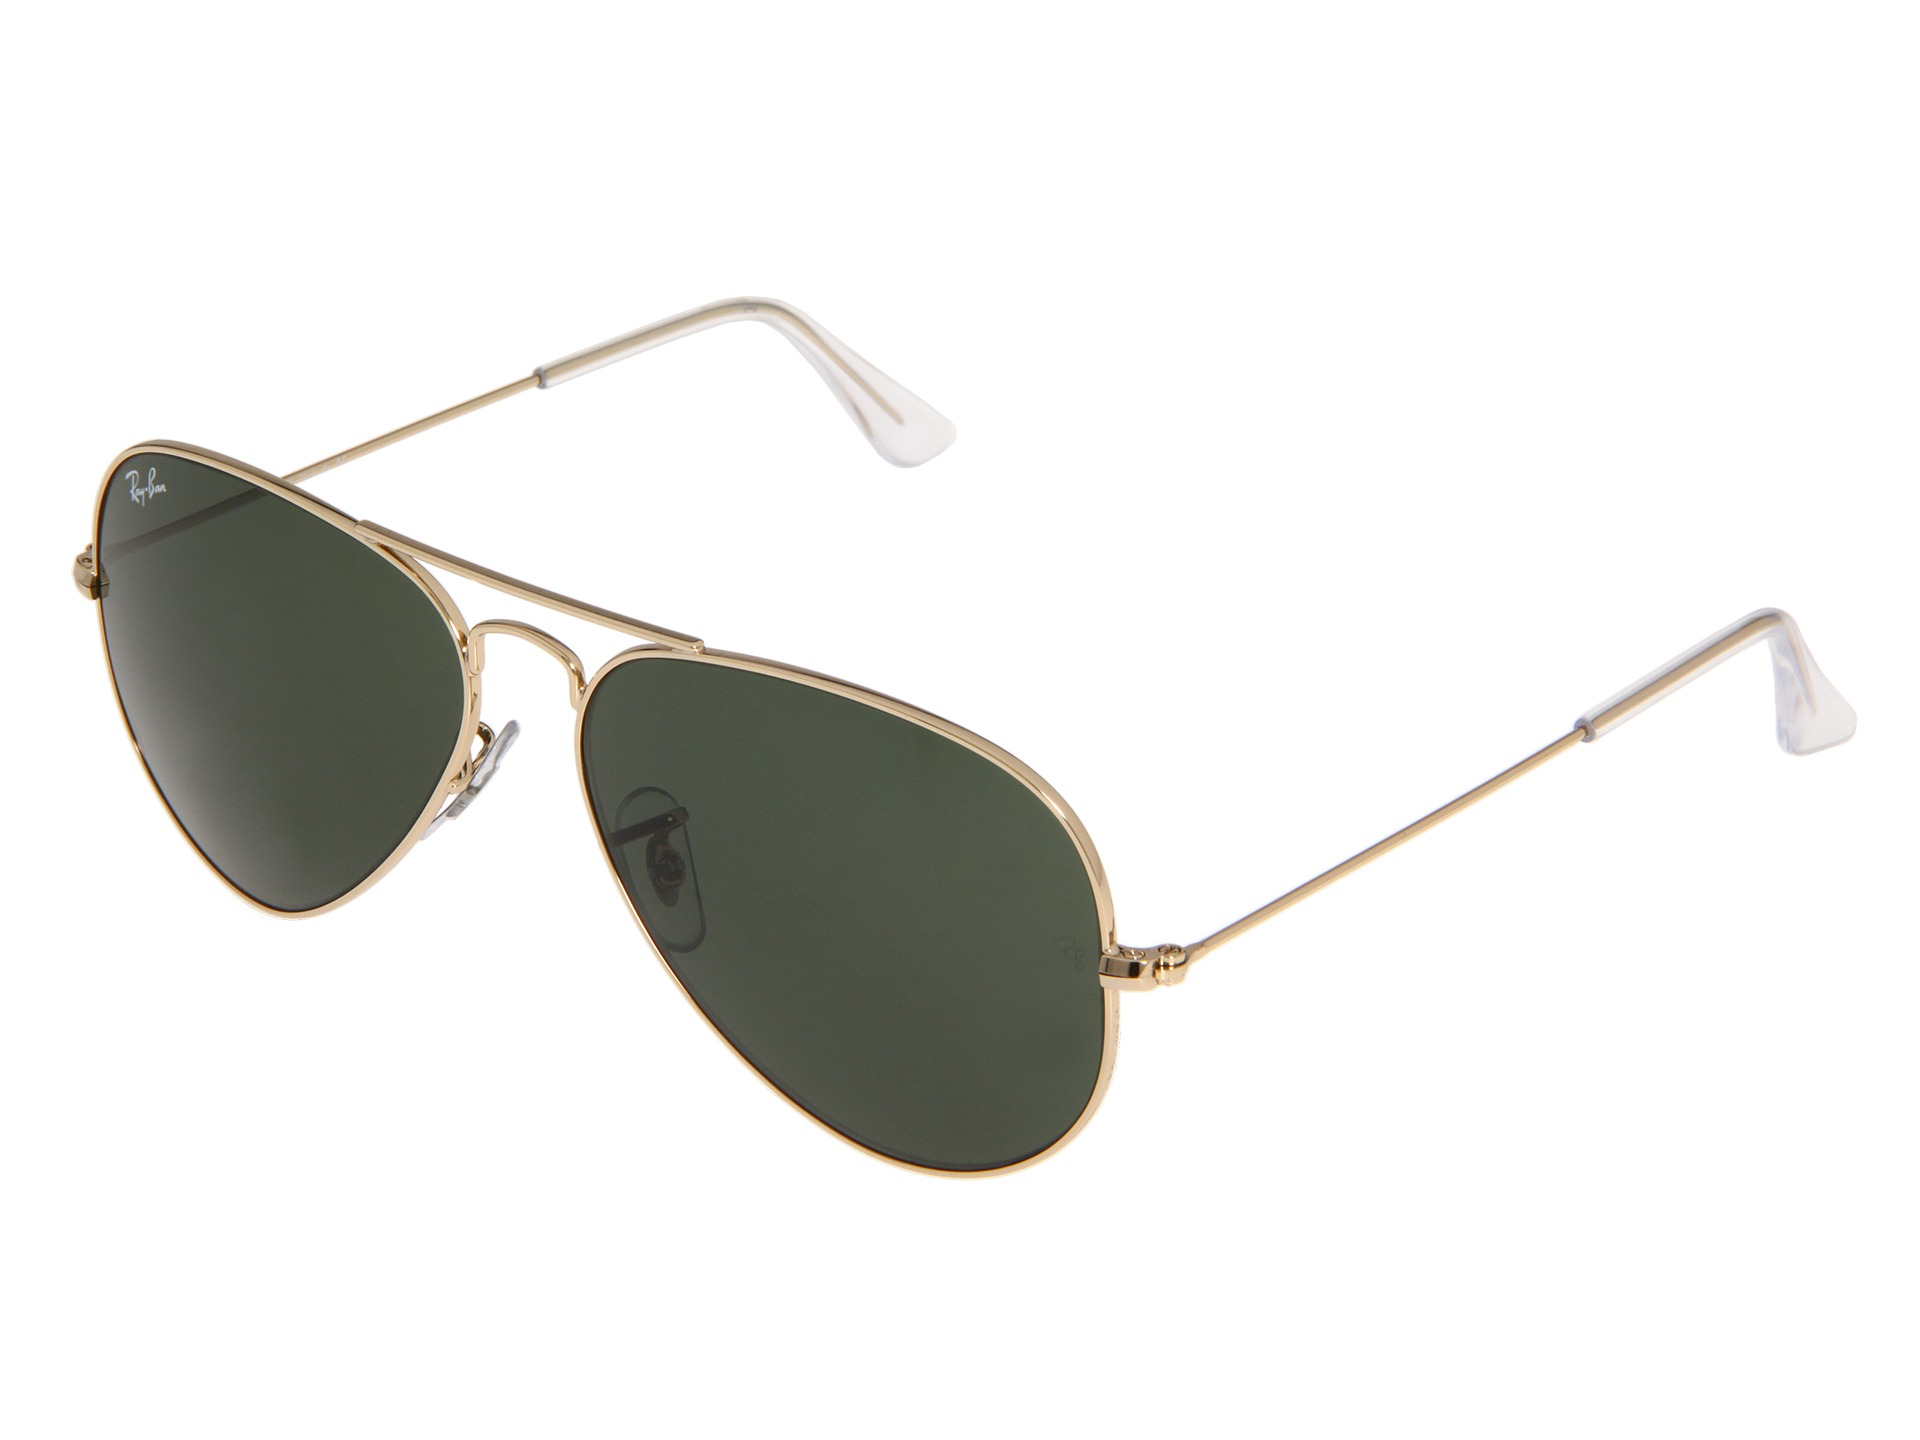 ray ban original aviator  ray ban rb3025 original aviator 58mm zappos free shipping both ways